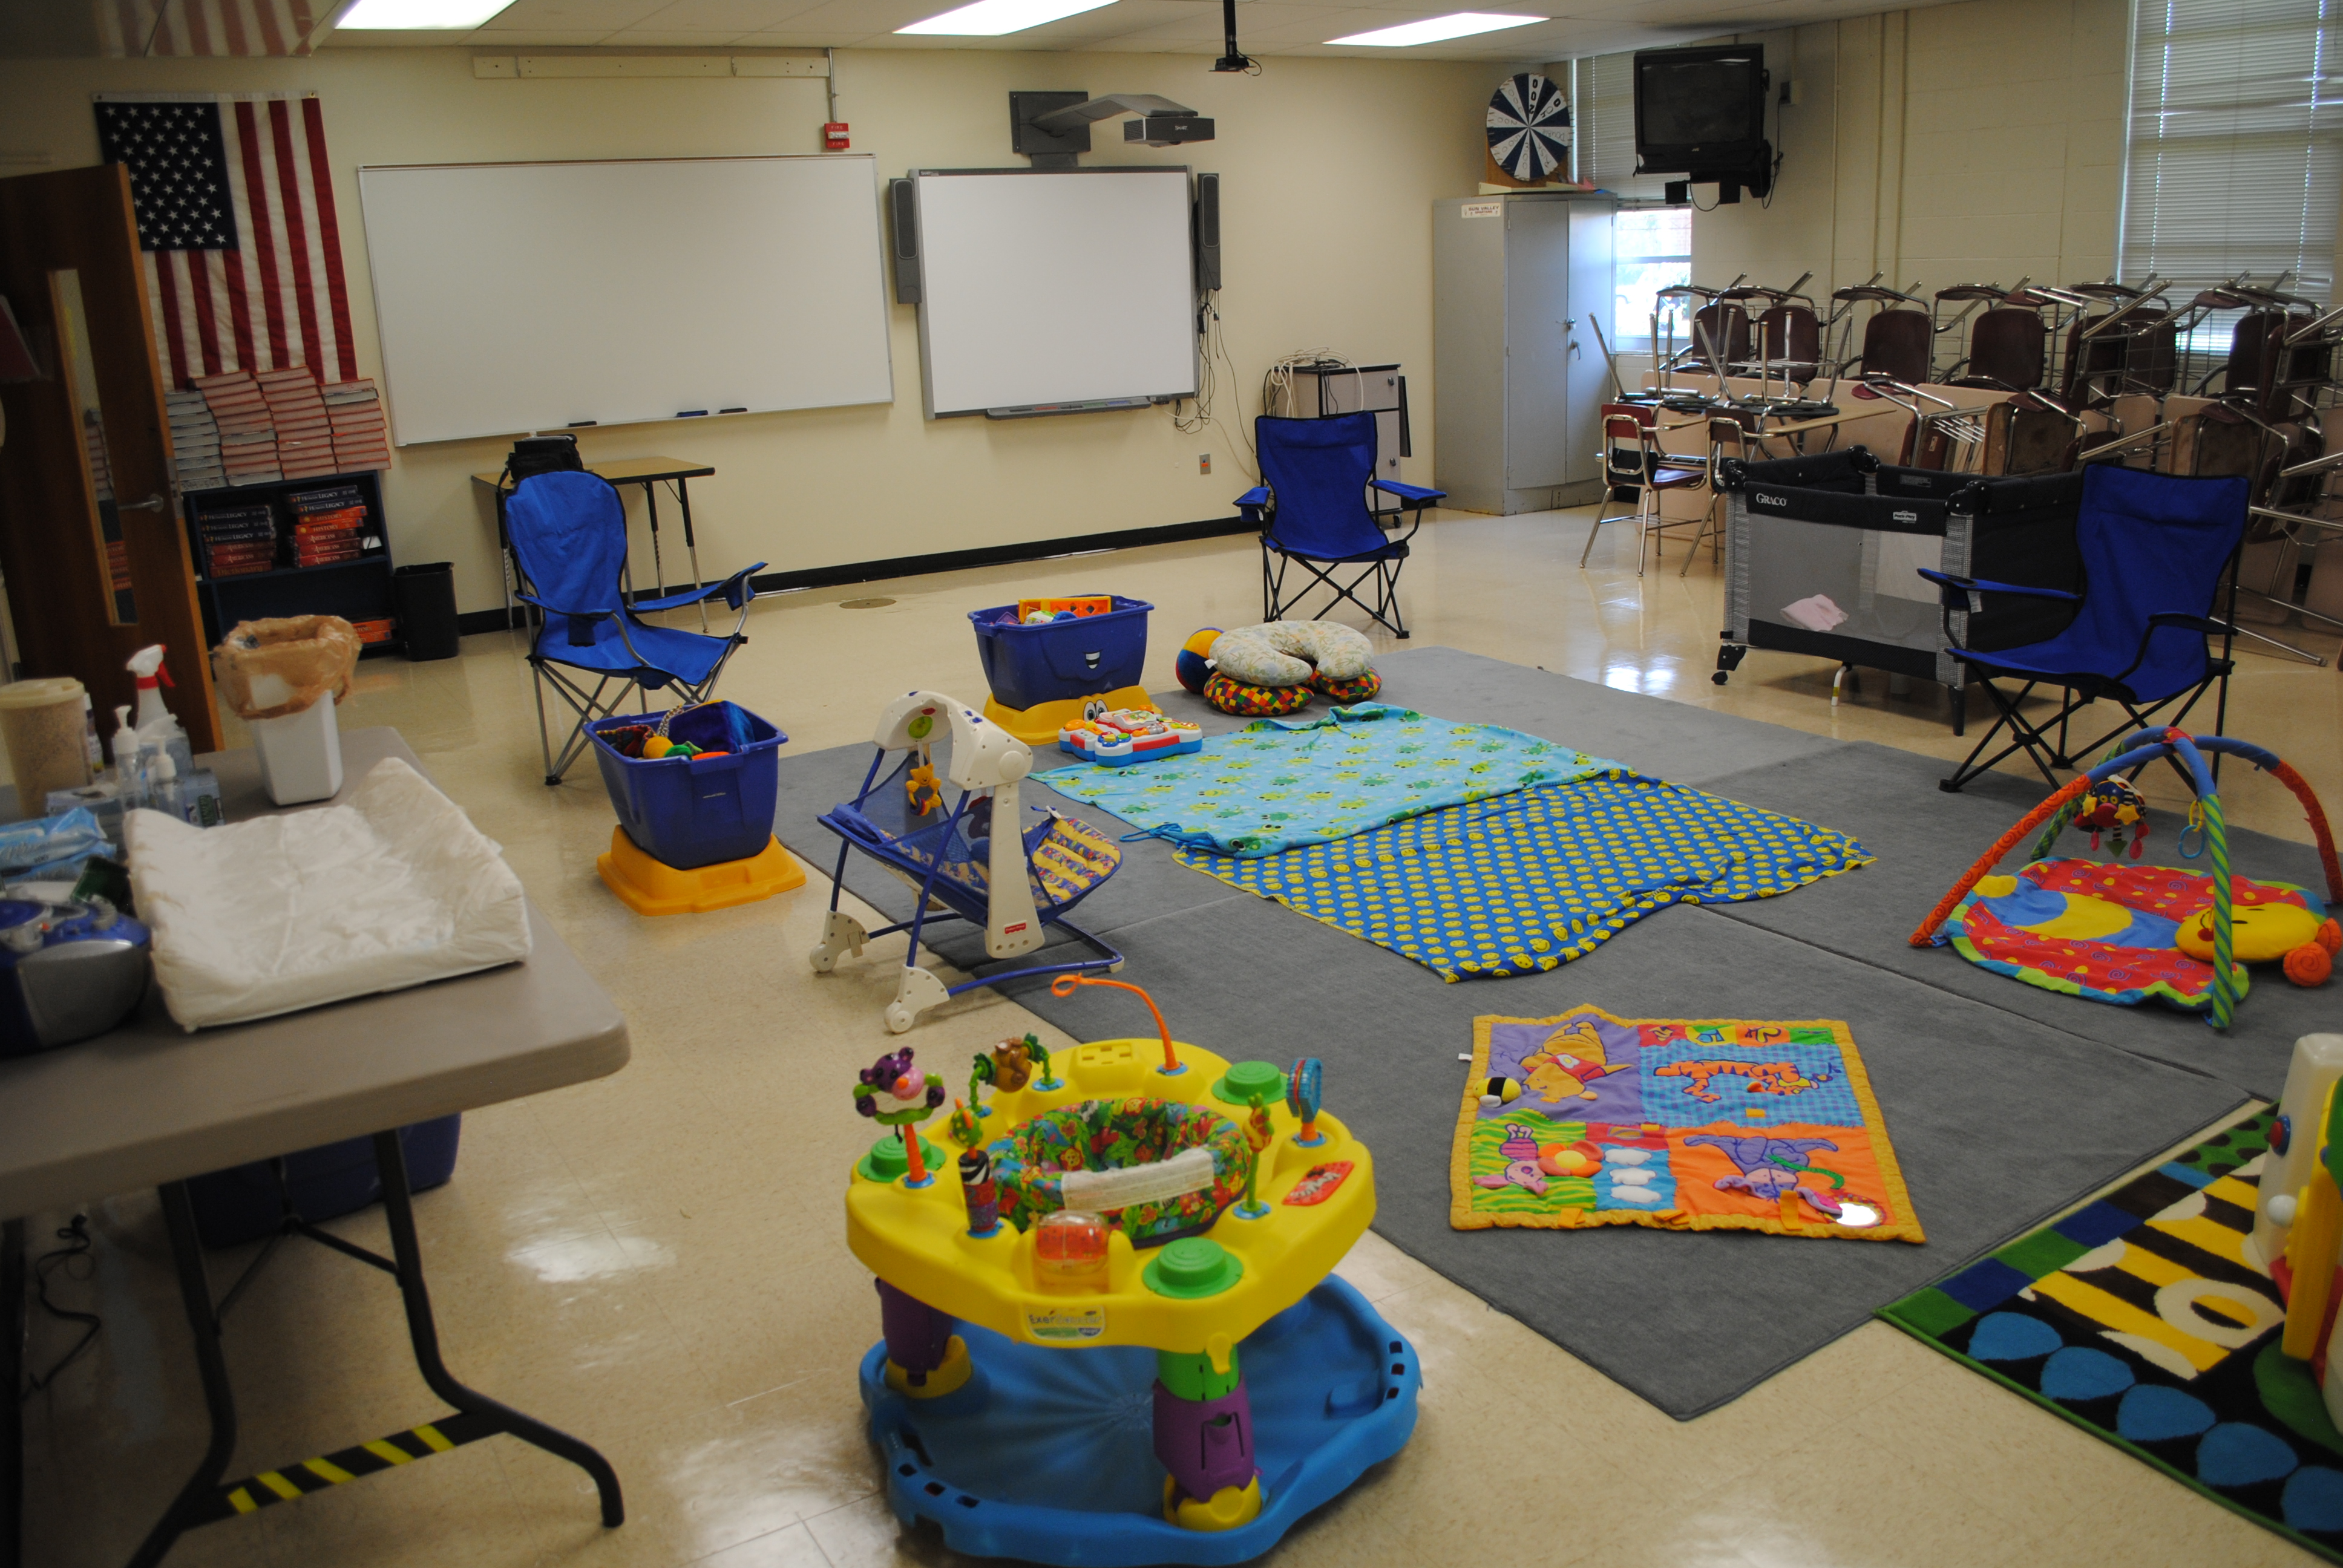 Children's Church Classroom Designs http://donnaharris.wordpress.com/tag/kids-church-portable/